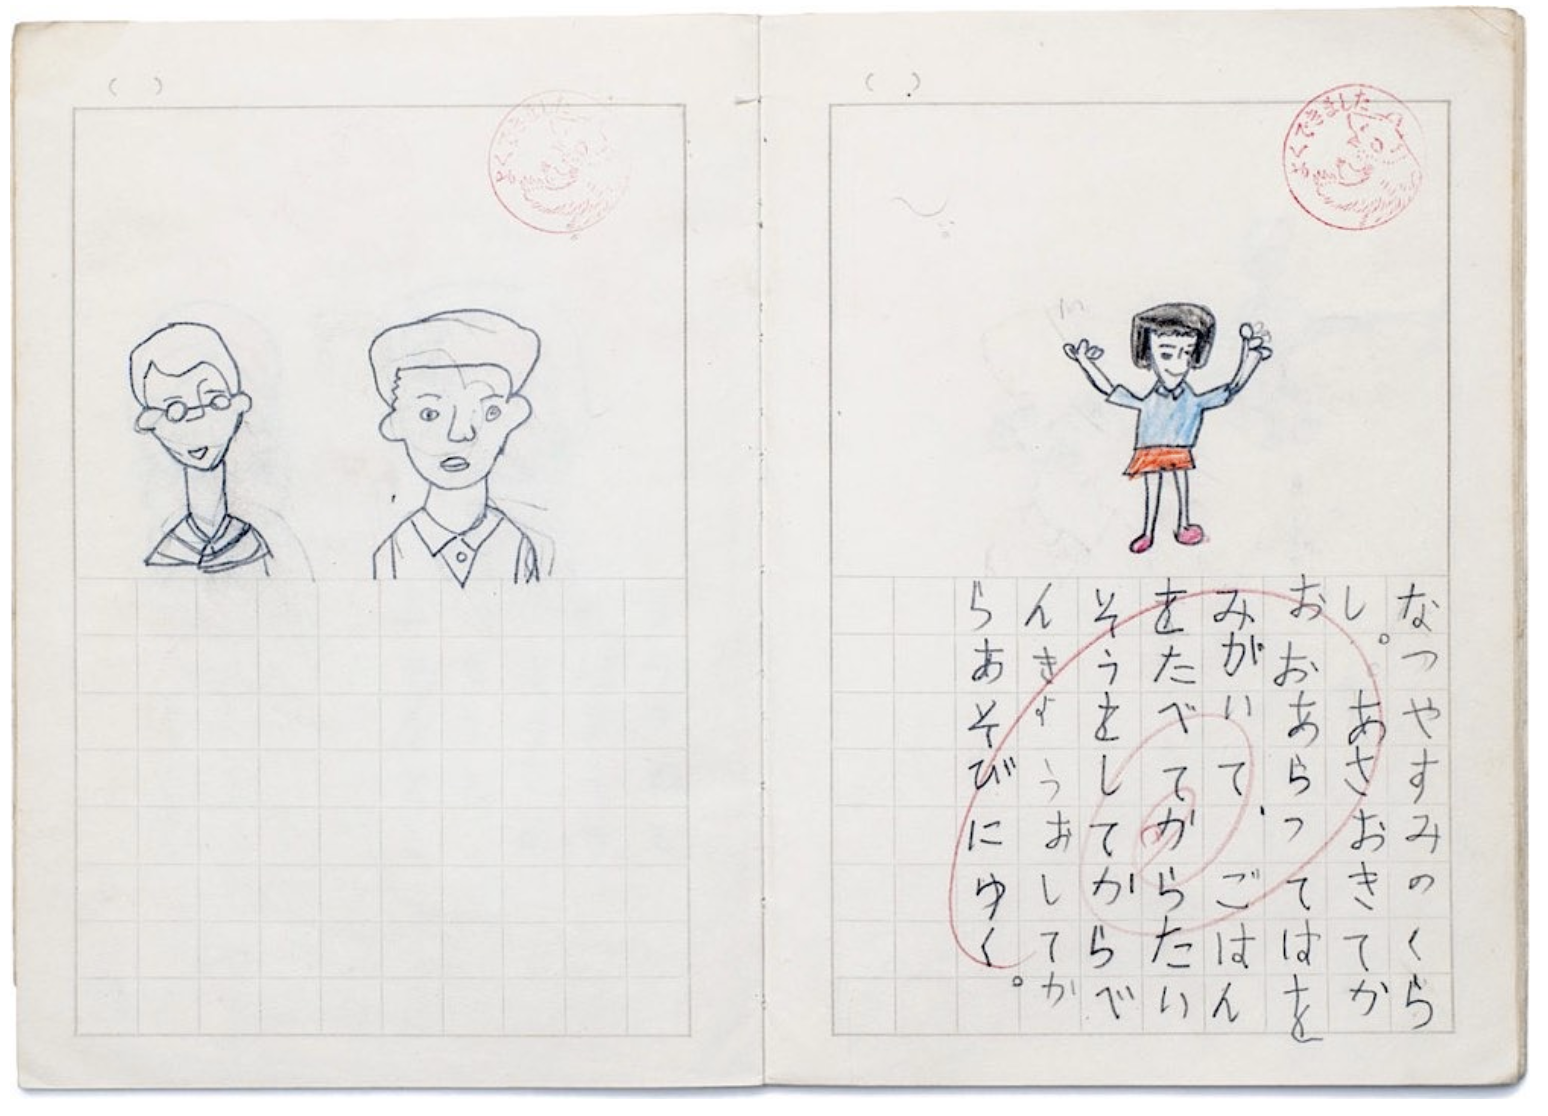 A Collection Of Children's School Notebooks From Around The World